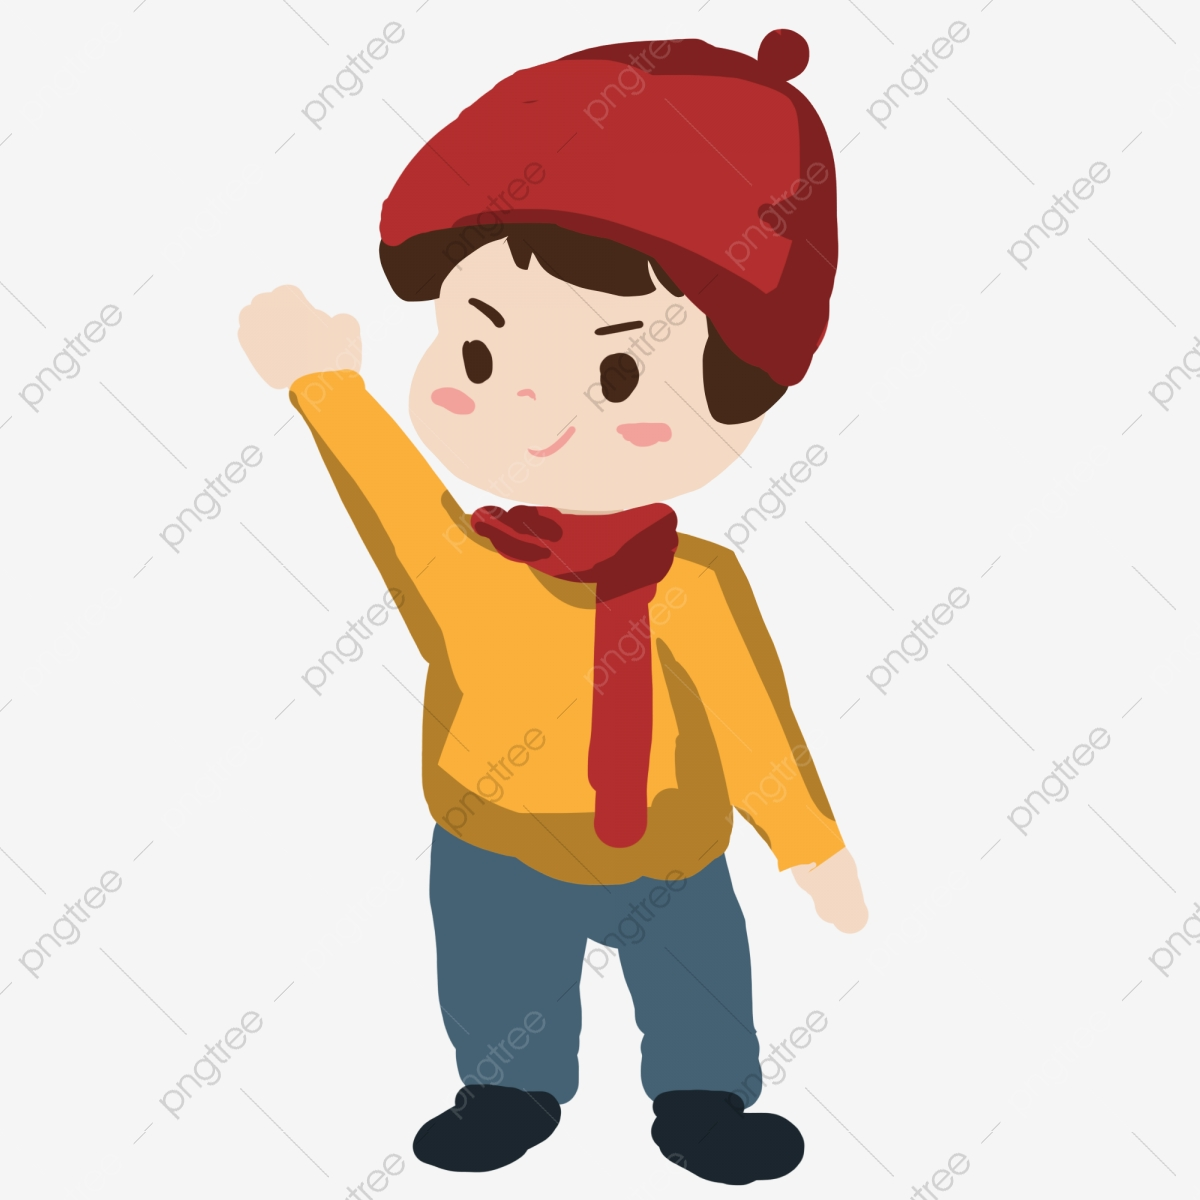 Hand Painted Cute Little Boy Wearing A Hat, Lovely, Children, Wear Ones Hat;  Put On Ones Hat; Pin The Label On Sb PNG Transparent Clipart Image and PSD  File for Free Download